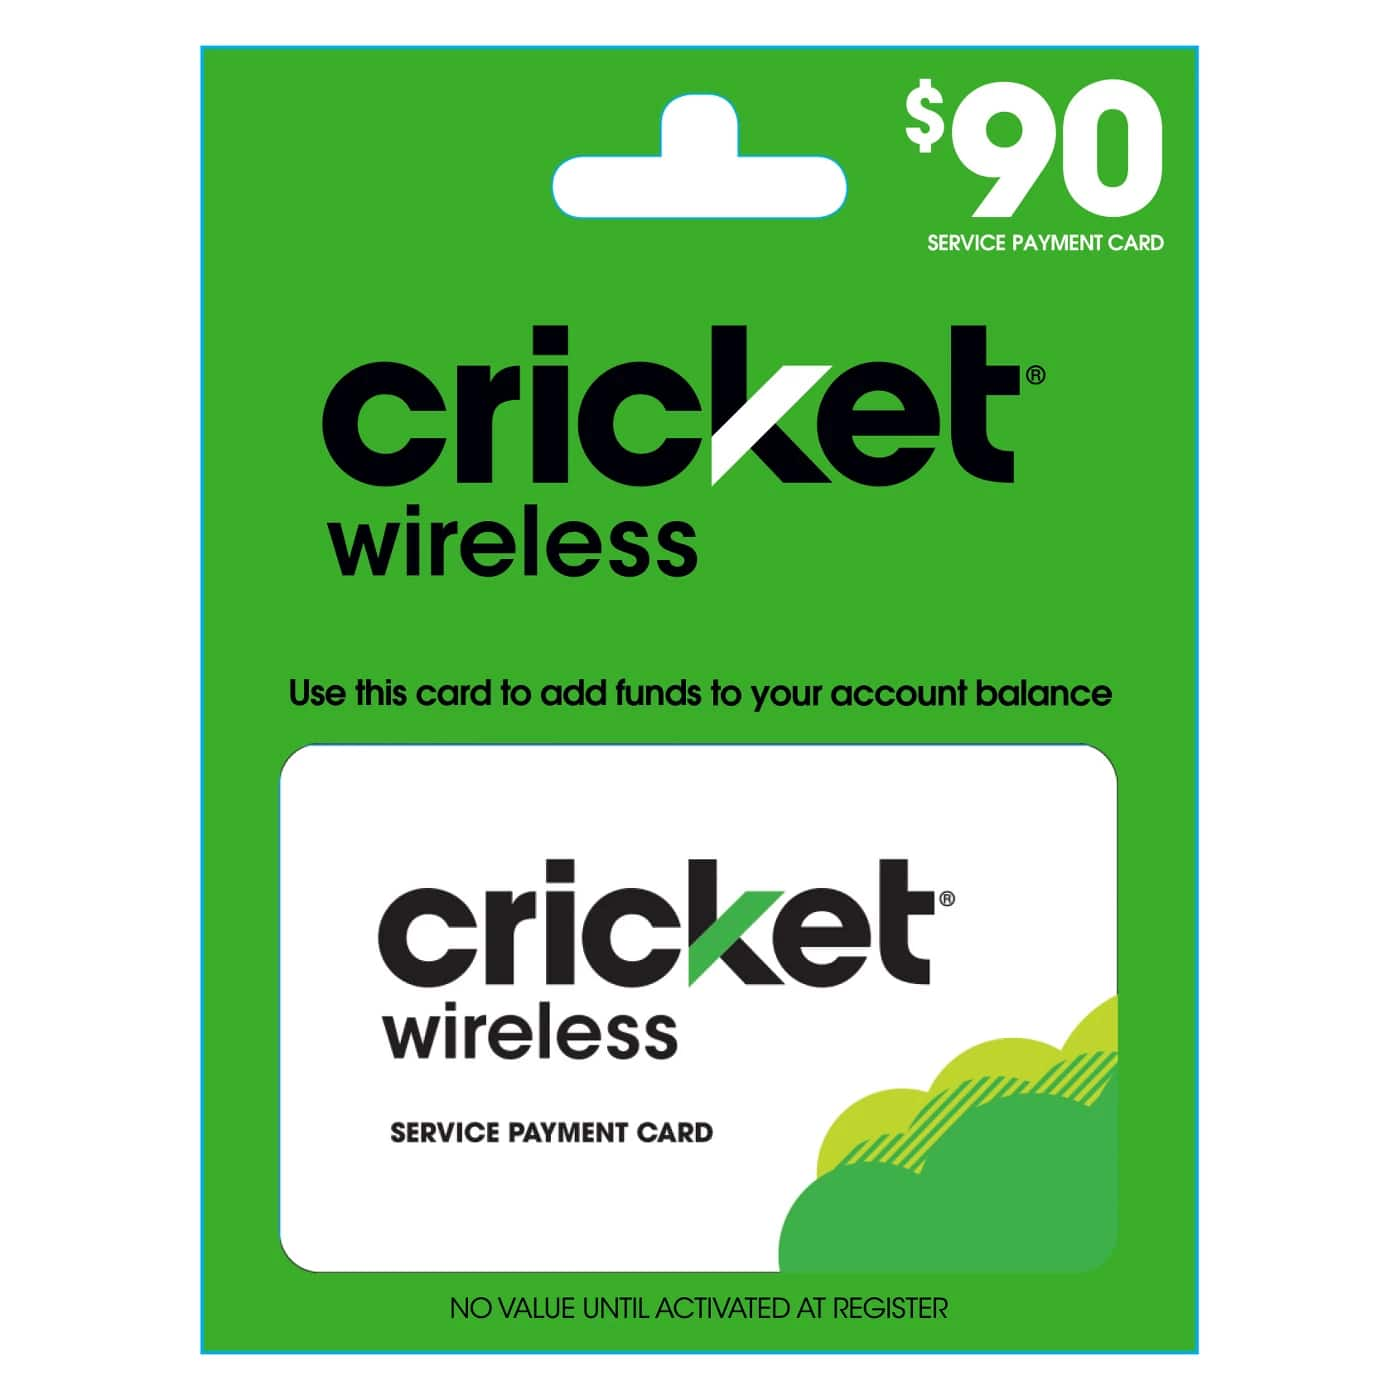 Prepaid Refill Cards: Cricket, AT&T, Tracfone & More-10% Off(on $30 or more, equal to B1G1 20% Off with 2 x quantity) $30 Card $27 + Email Delivery